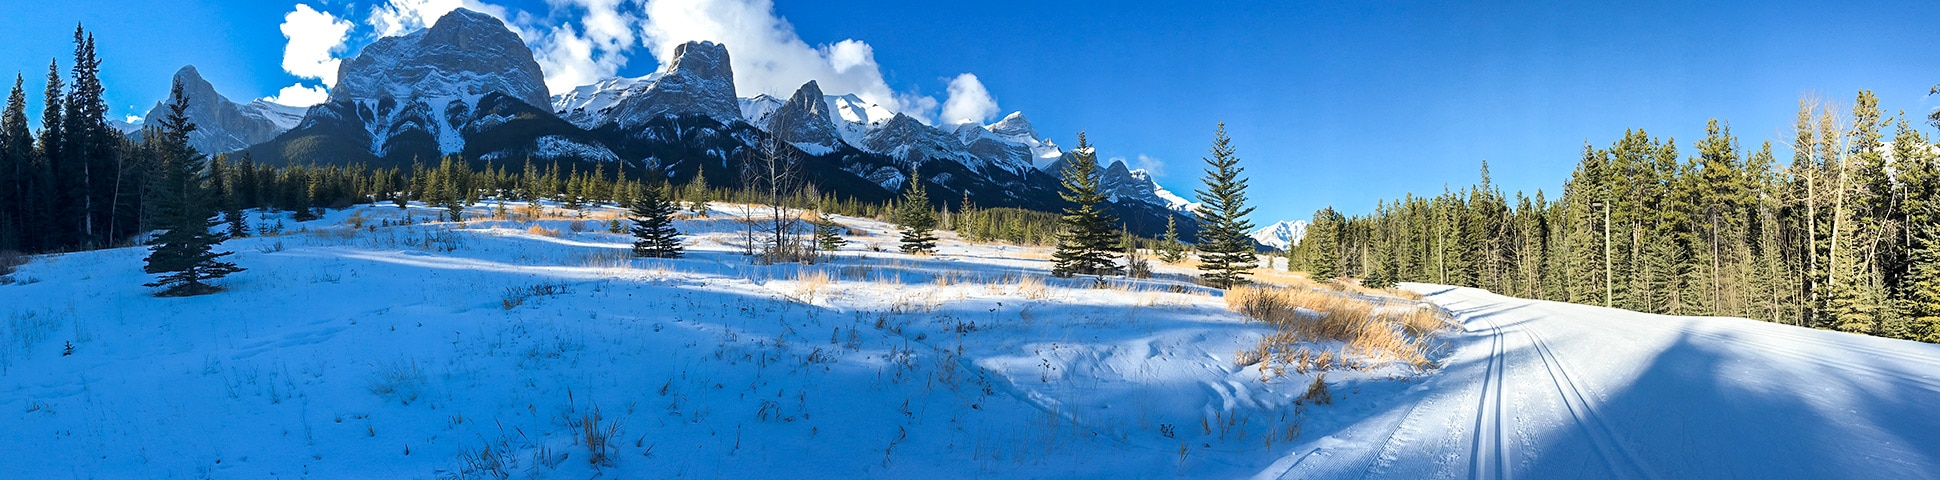 Panoramic view from Canmore Nordic Centre XC ski trail in Canmore near Banff National Park